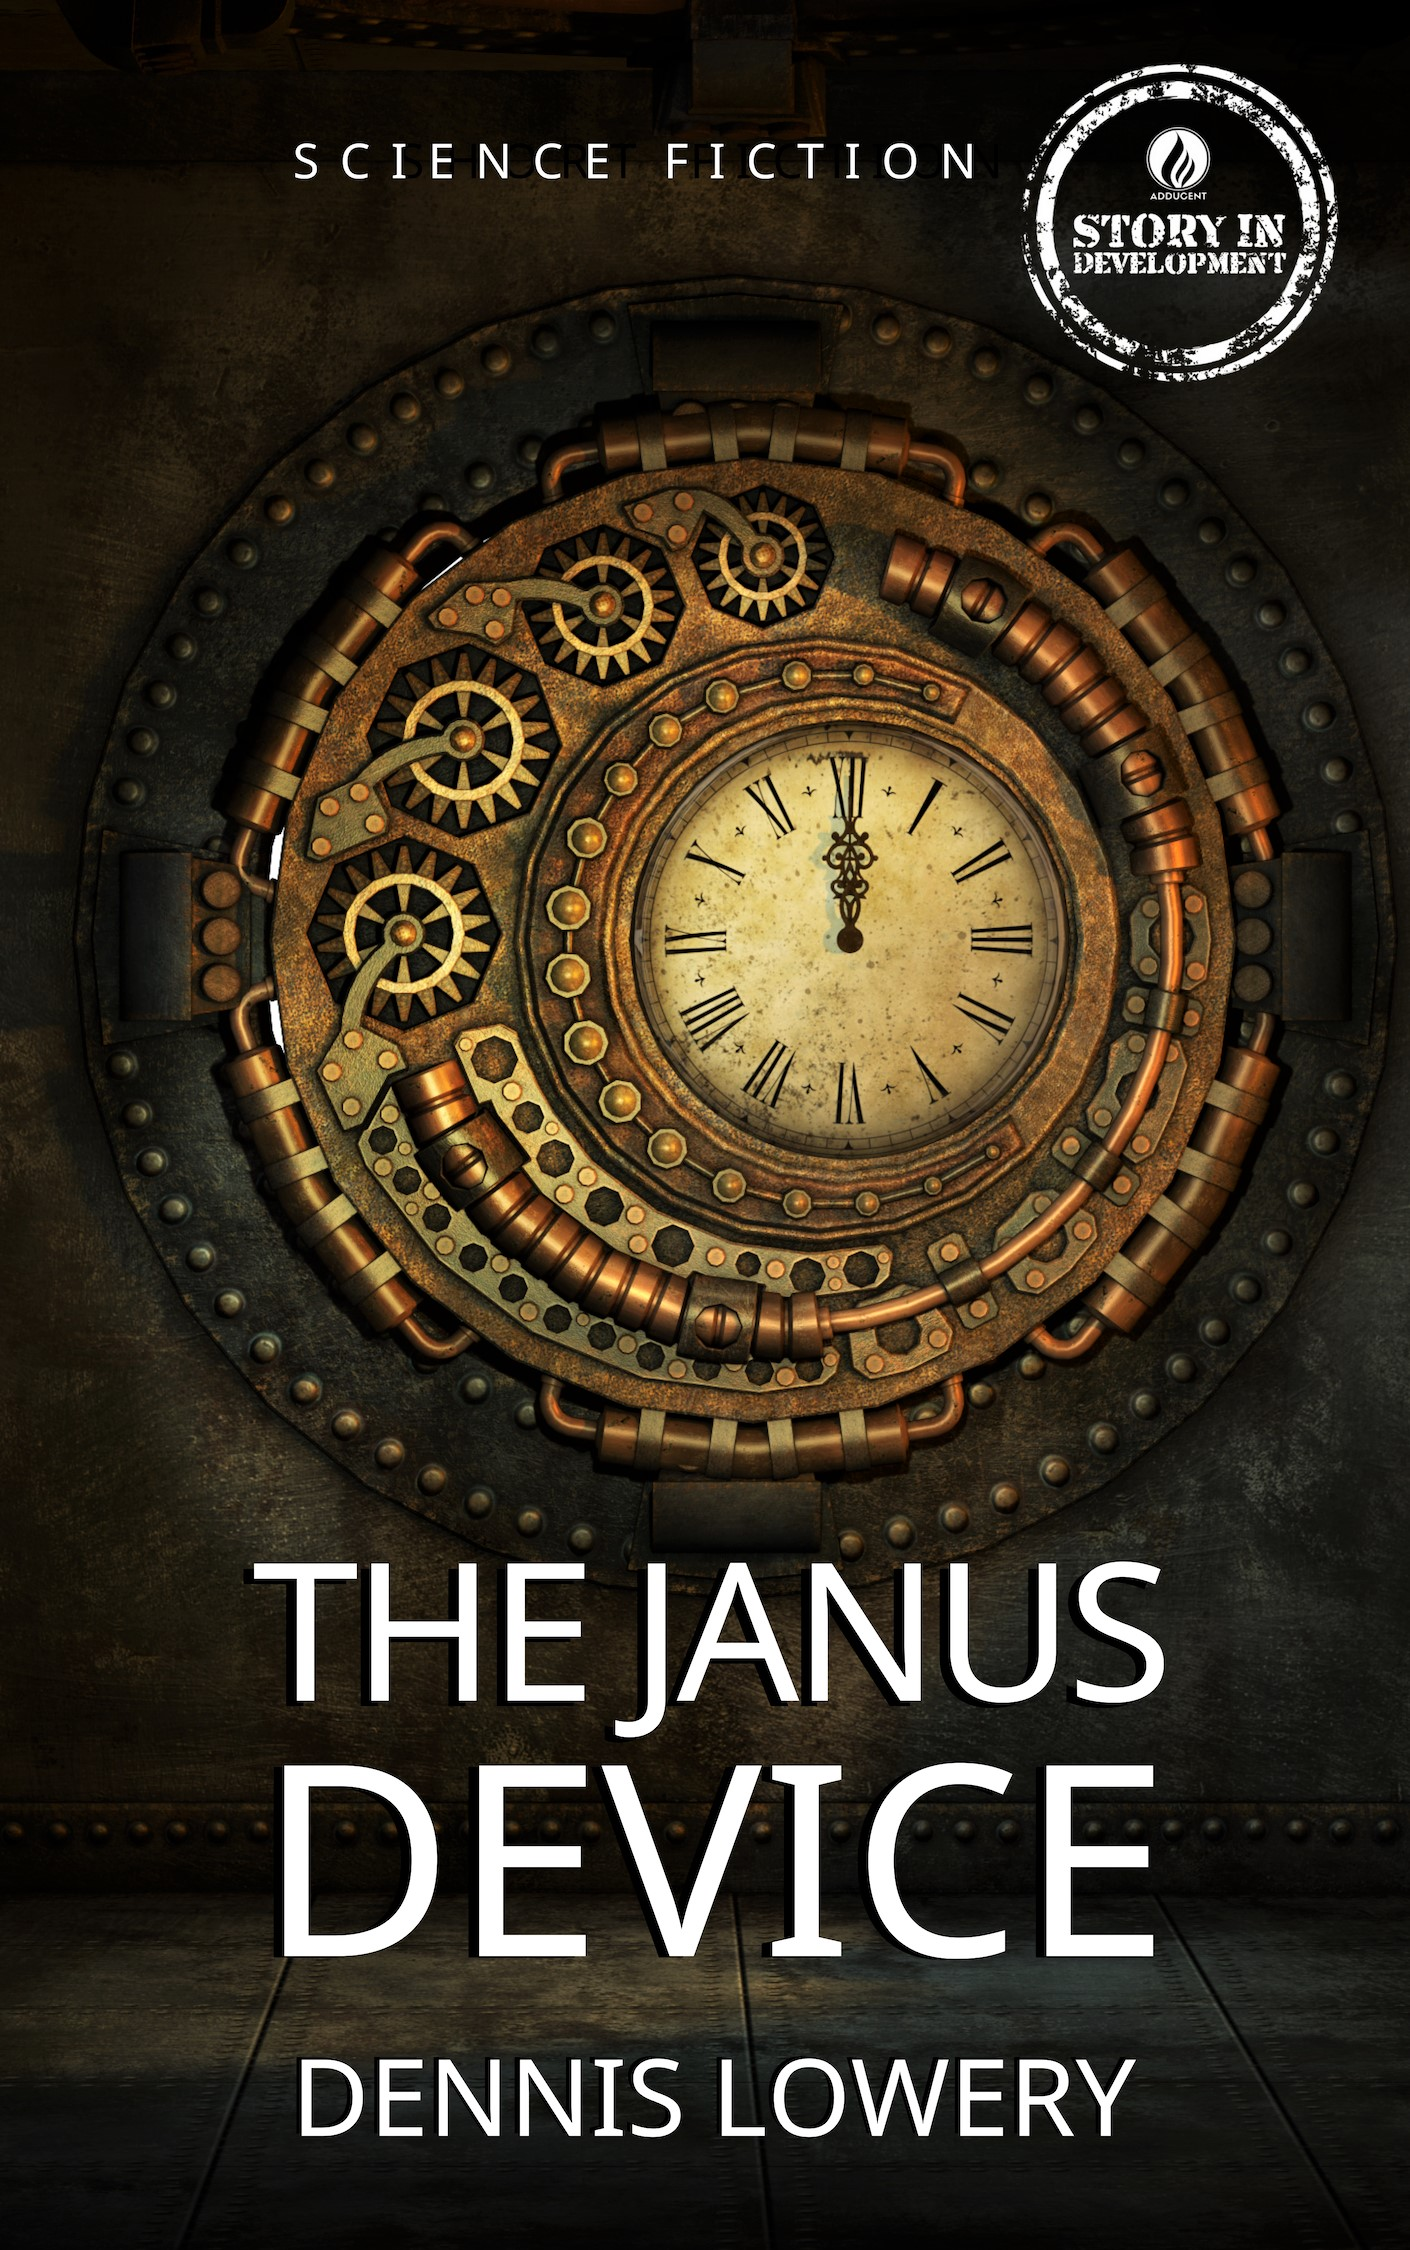 THE JANUS DEVICE by Dennis Lowery